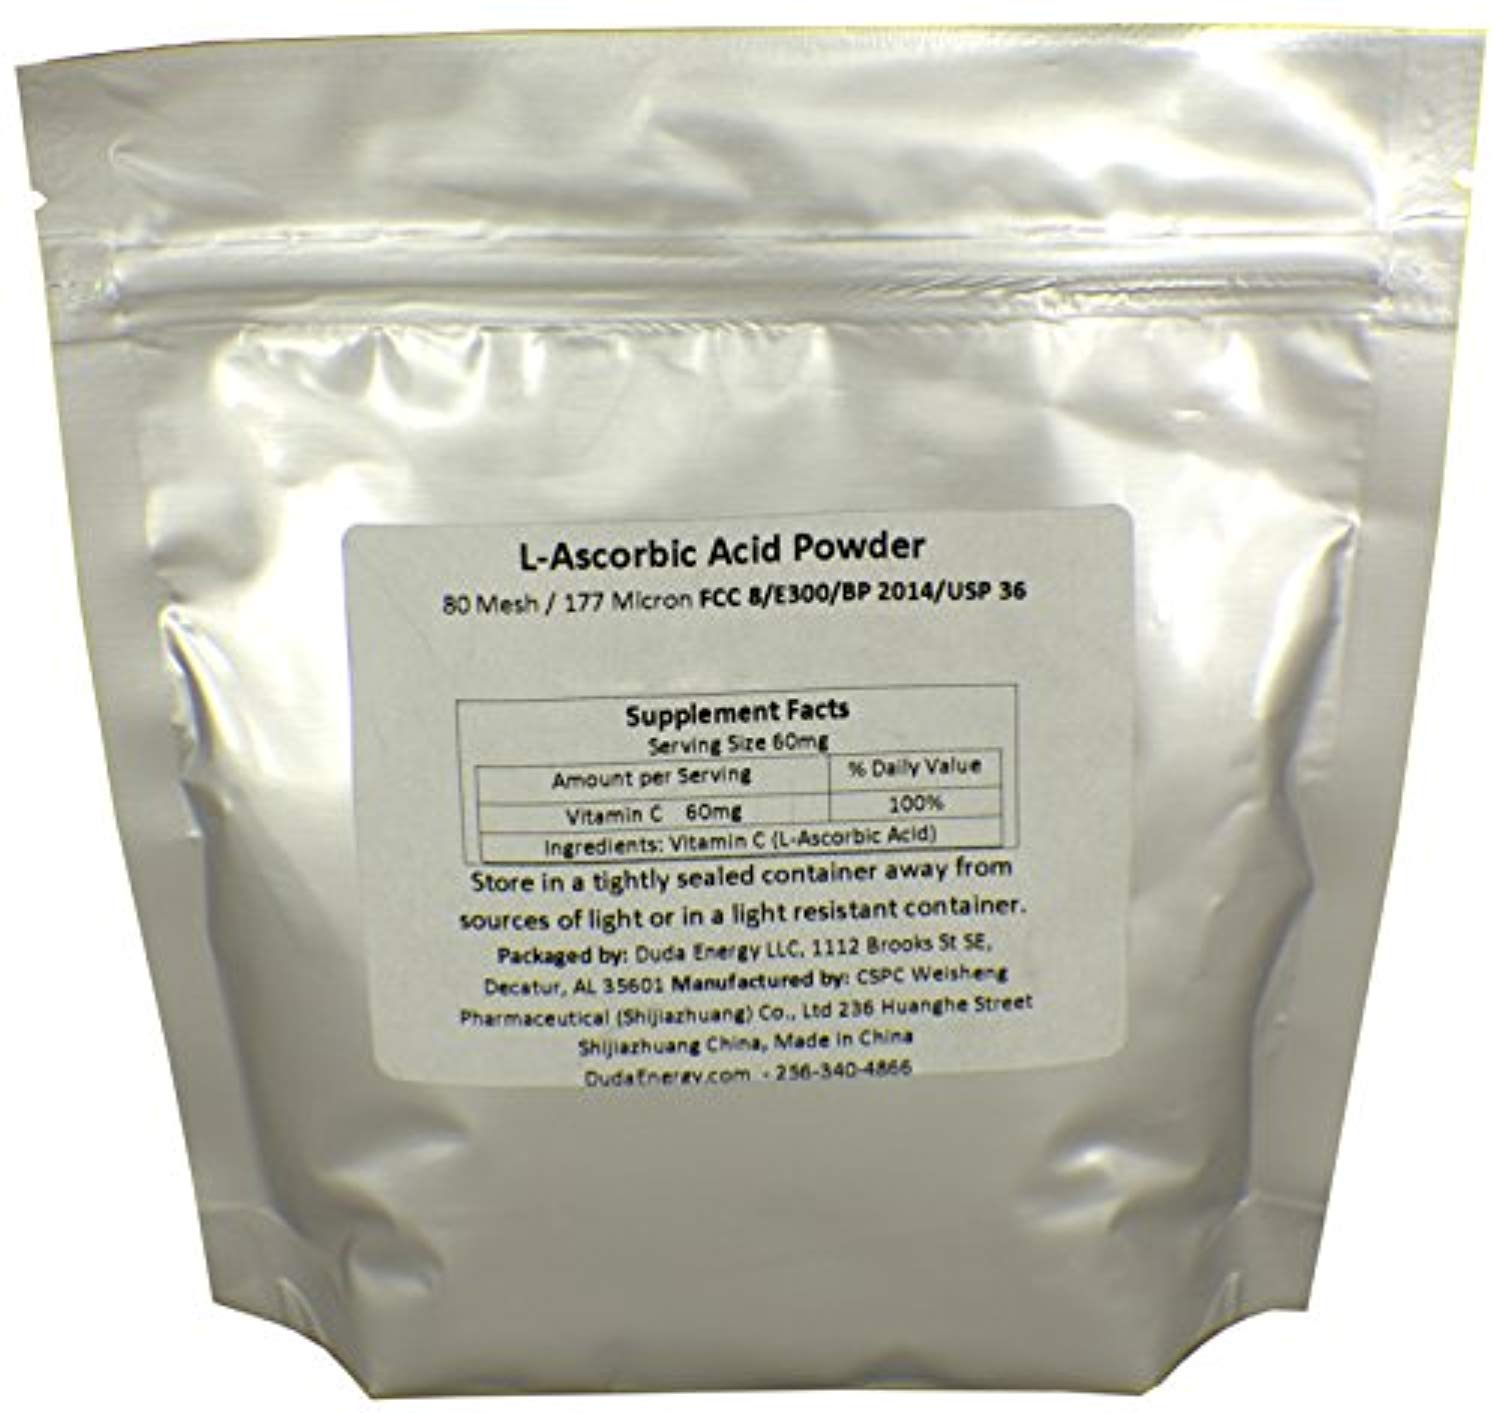 L-Ascorbic Acid Powder 99+% Naturally Fermented Pure White Crystals Form of Vitamin C, 1 lb. image